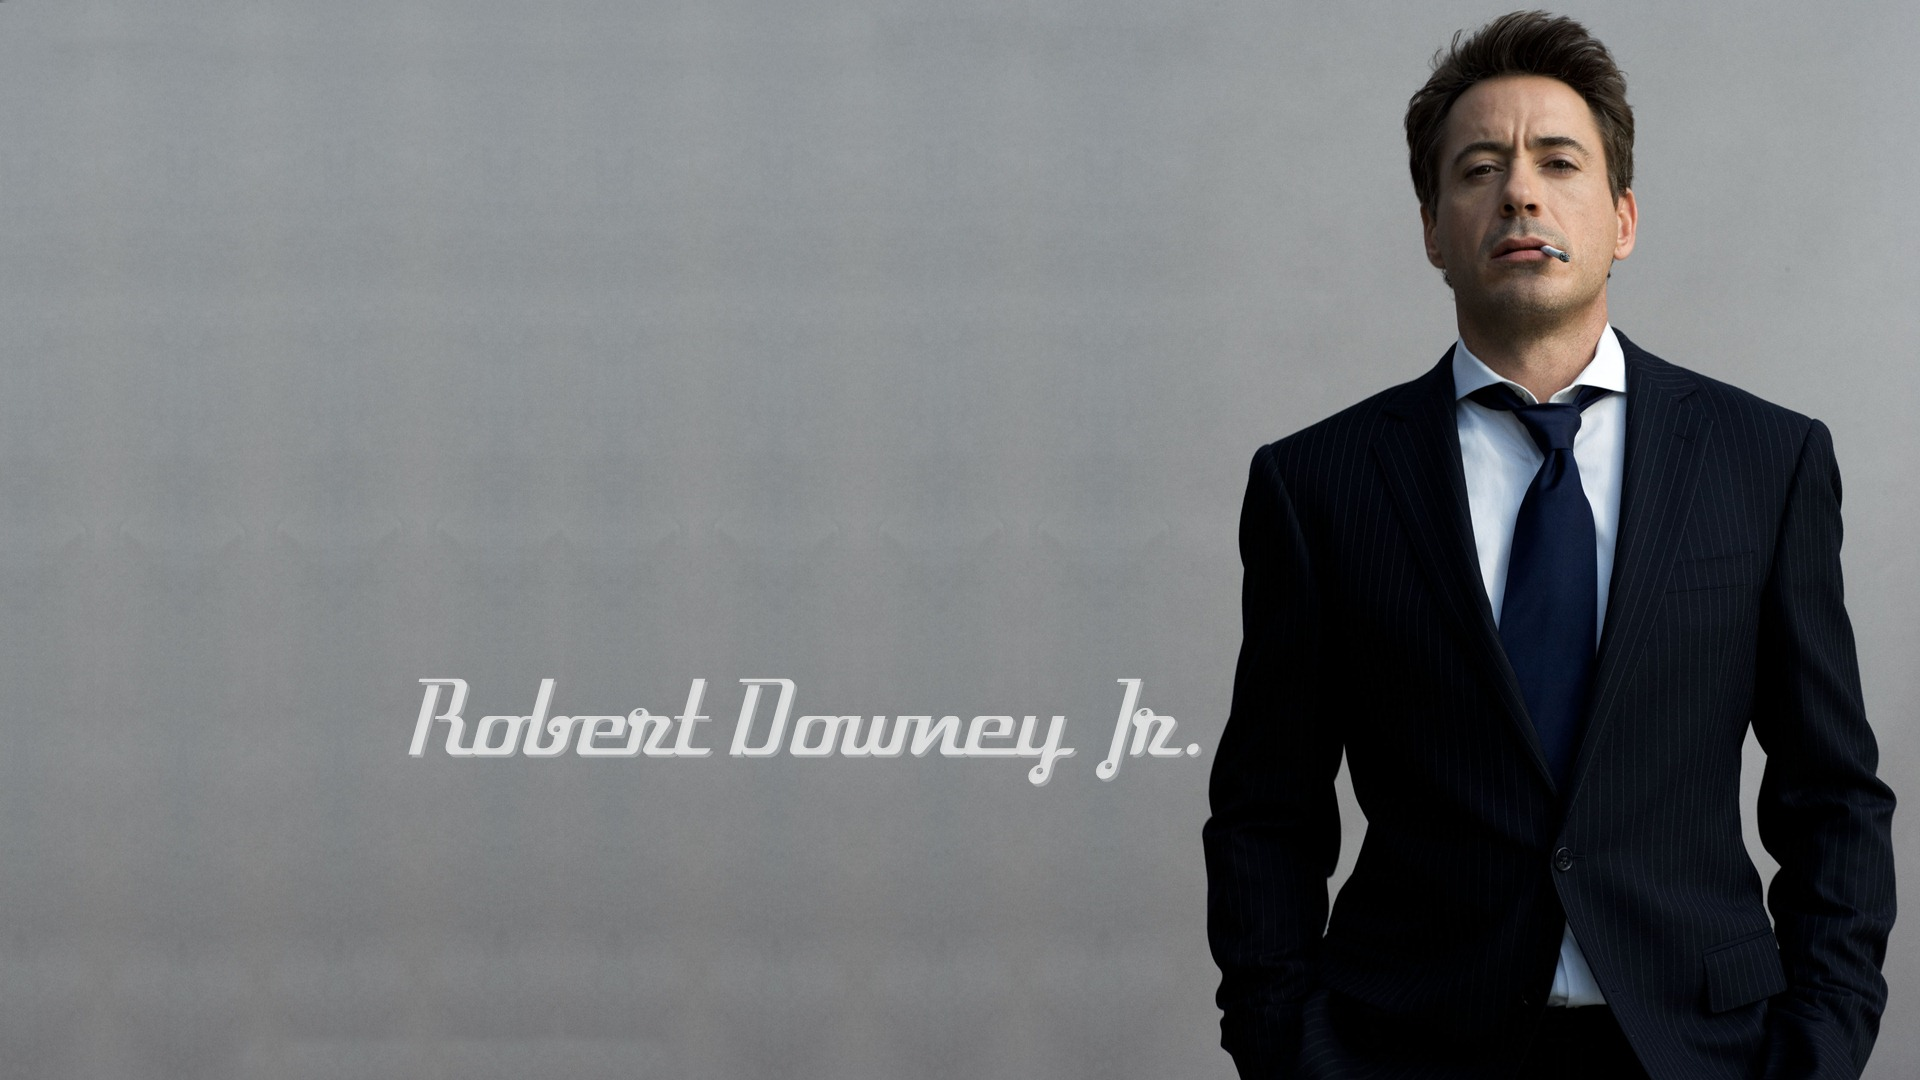 Free hd wallpaper robert downey jr - Robert Downey Jr Wallpapers Desktop